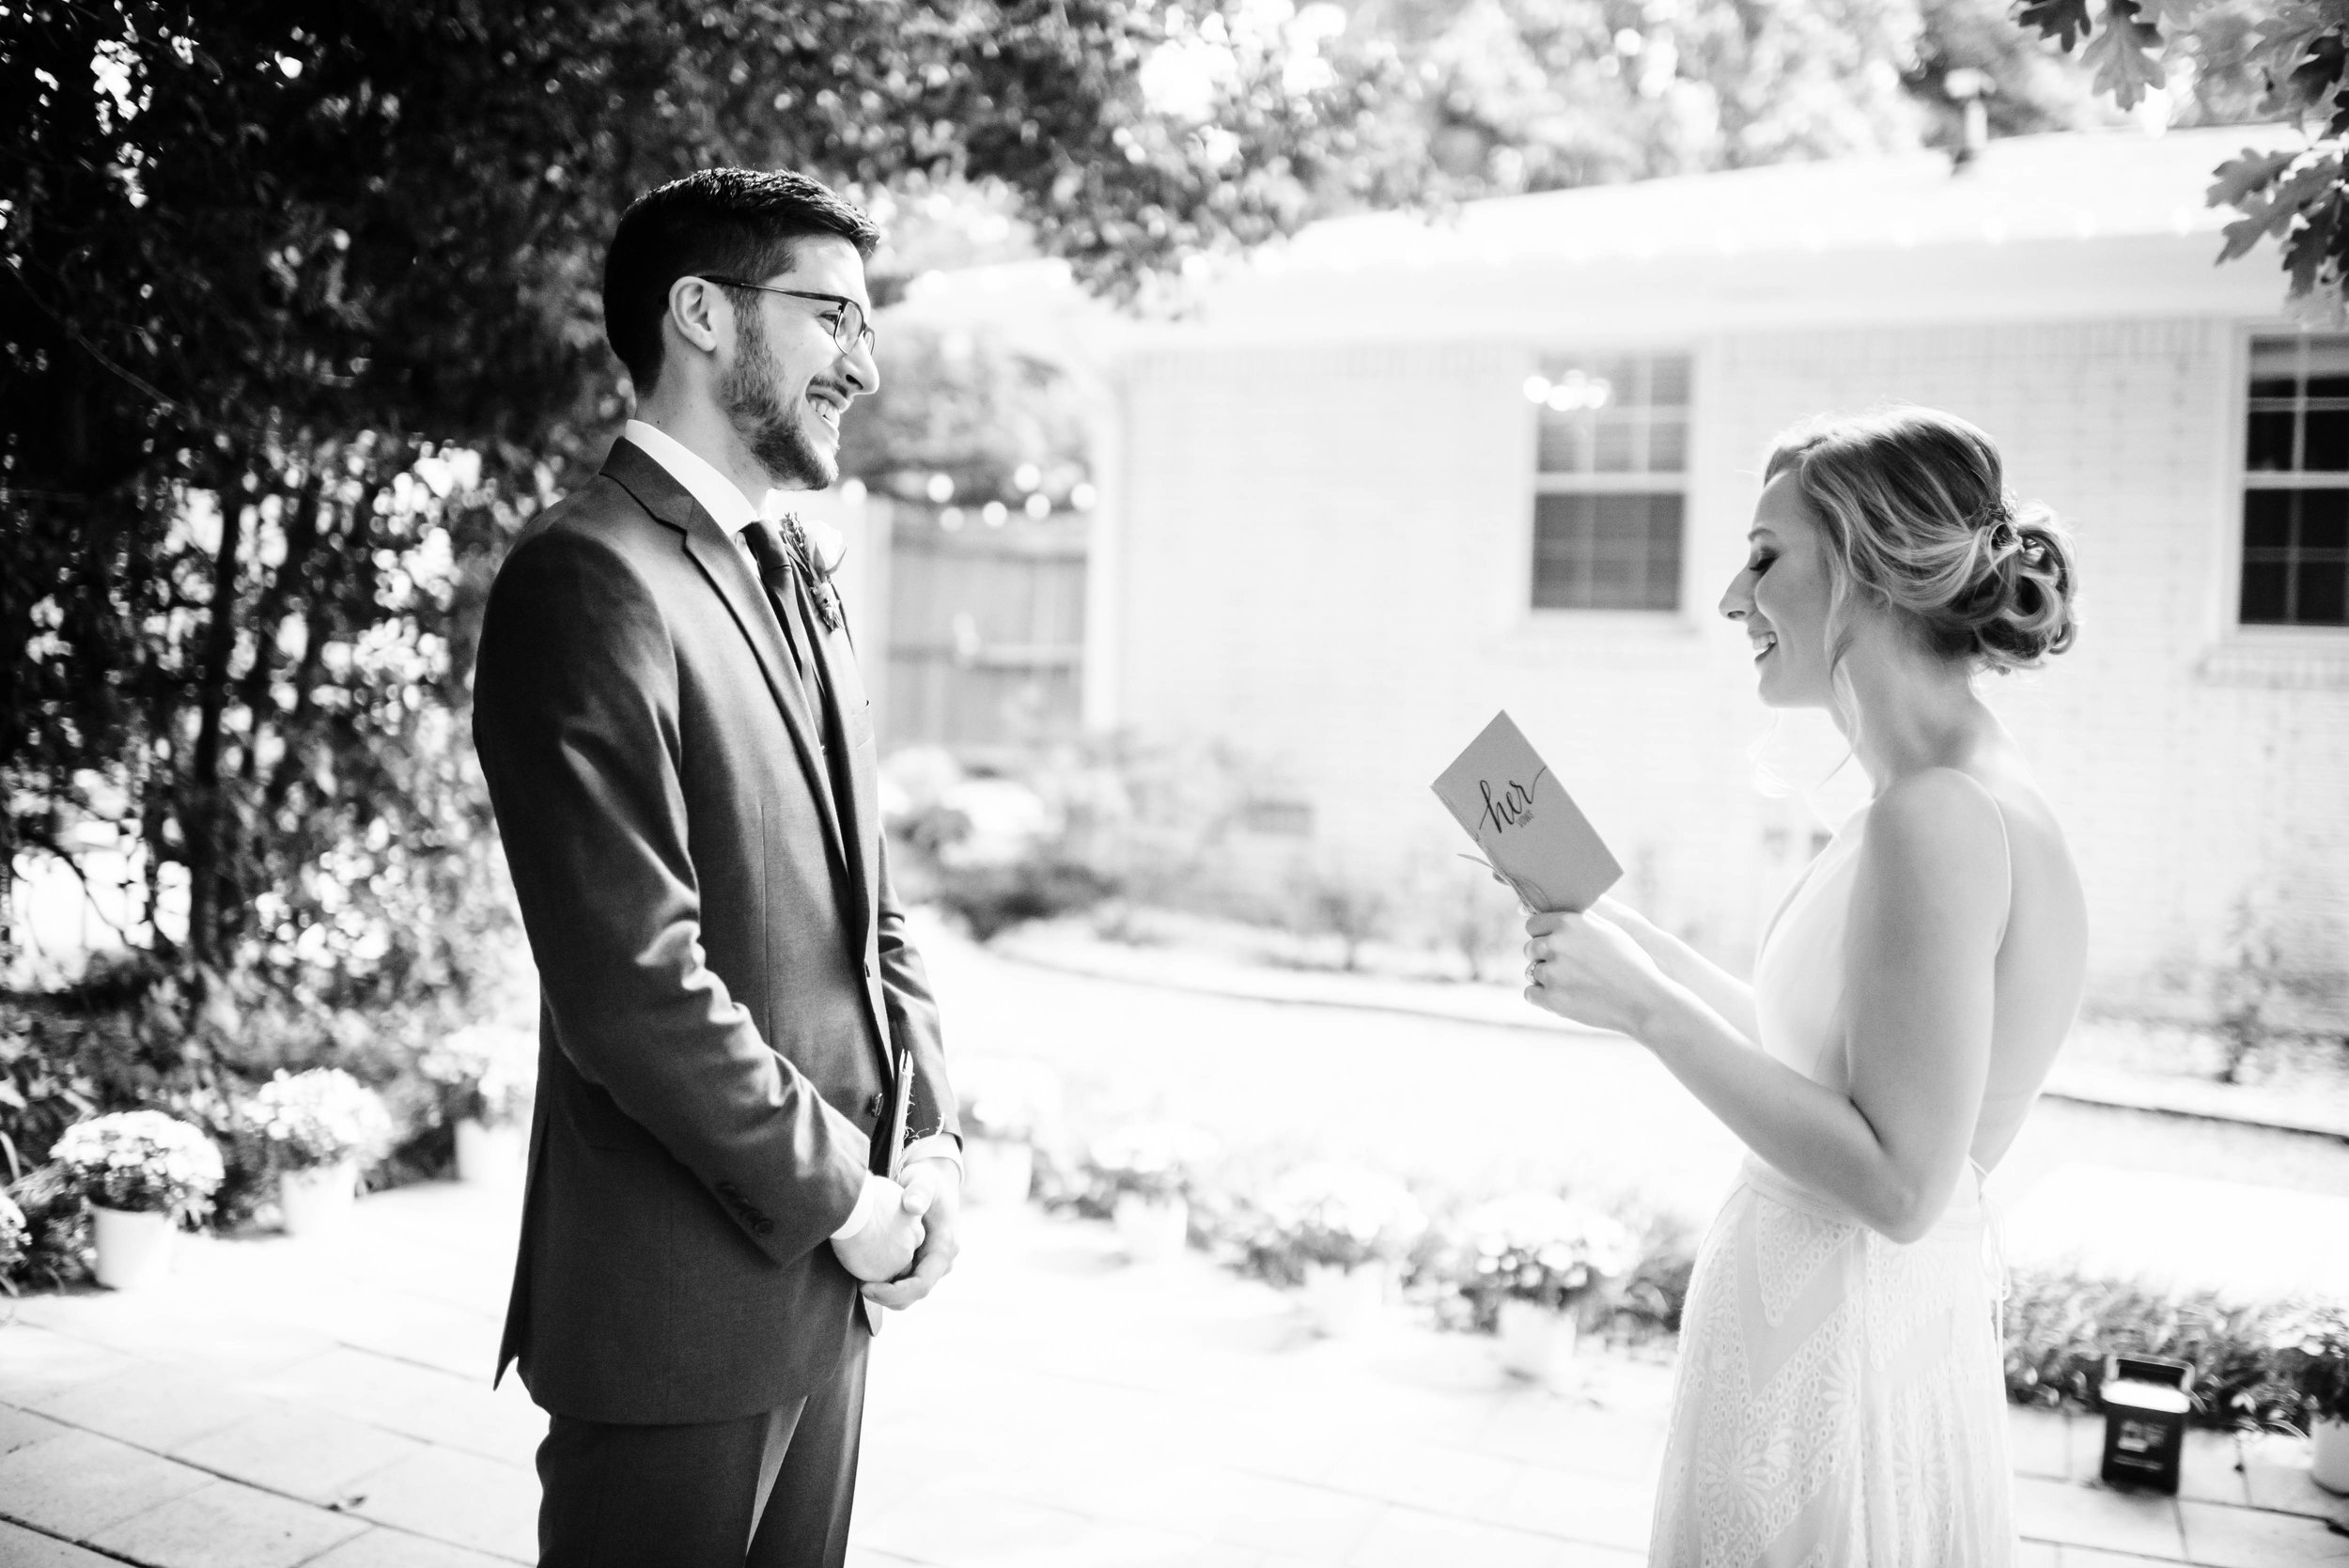 atlanta backyard wedding bay area oakland san francisco engagement wedding nontraditional fun creative eclectic photographer magic-216.jpg